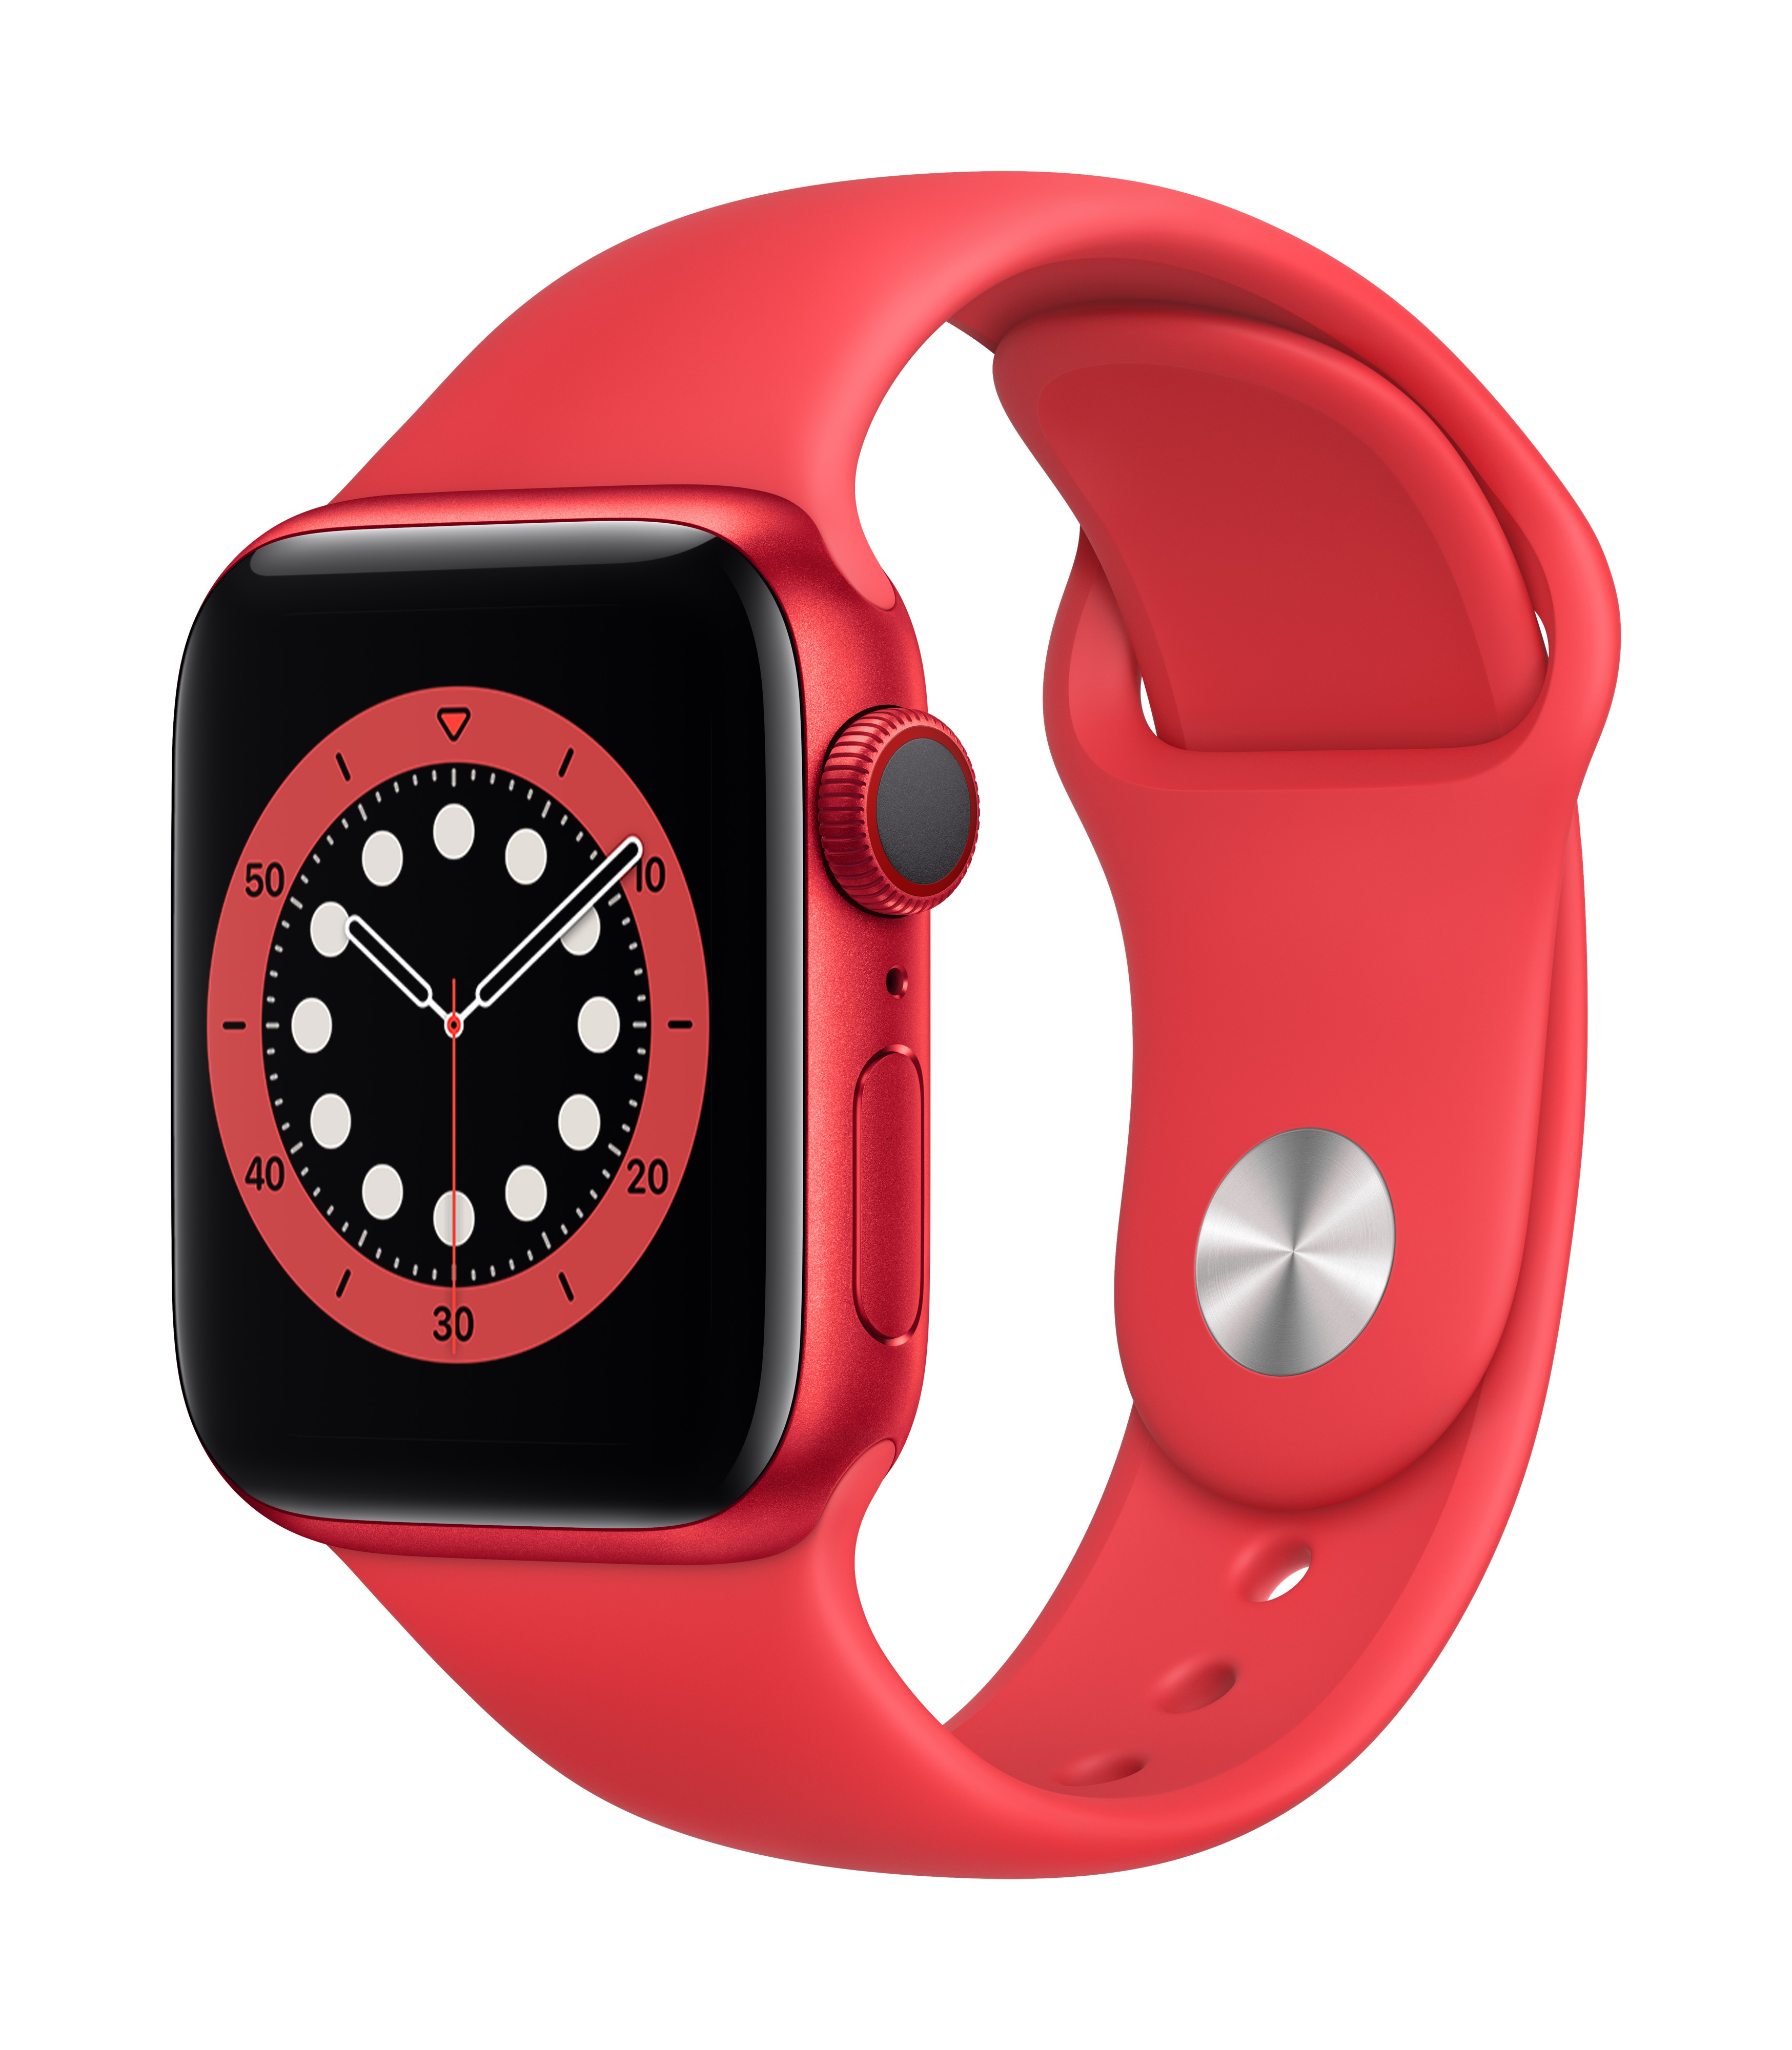 Apple_Watch_Series_6_Cellular_40mm_RED_Aluminum_Product_RED_Sport_Band_34R_Screen__USEN